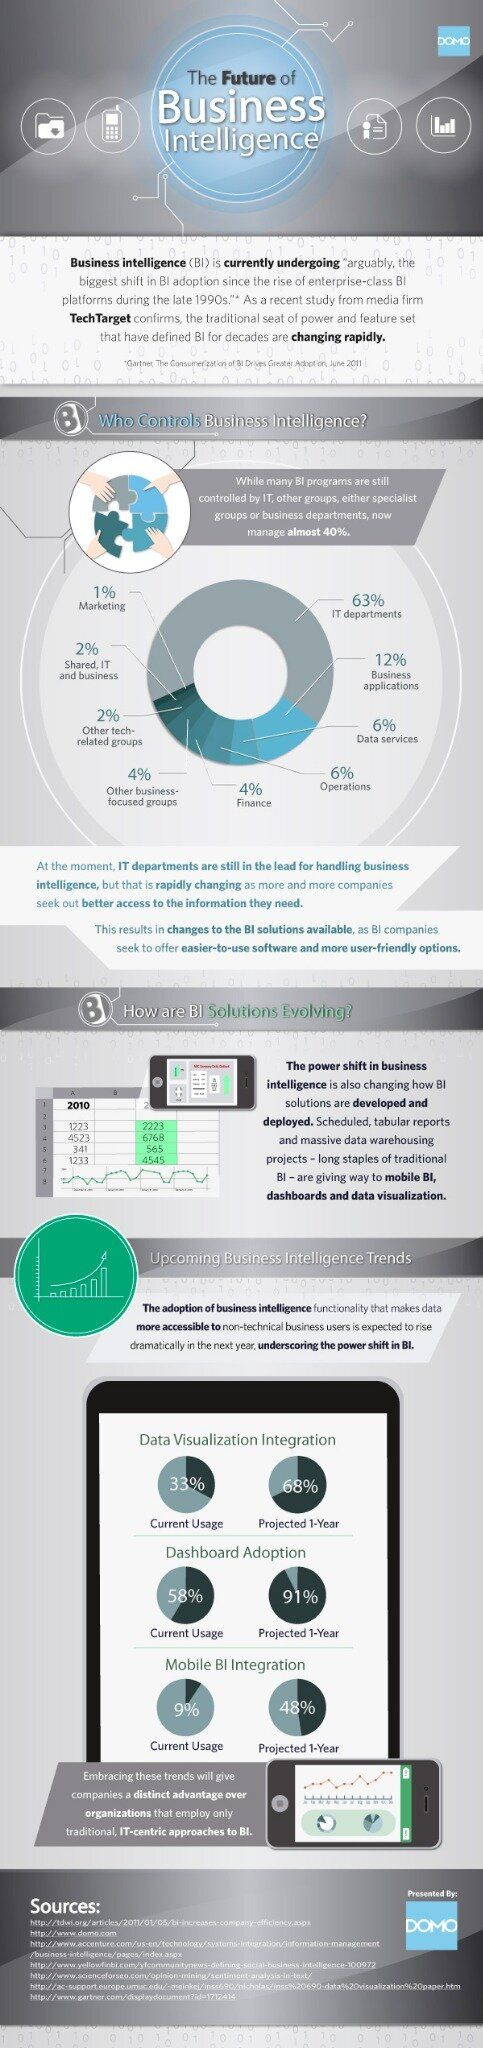 [InfoGraphic] The Future of Business Intelligence - YourDailyTech